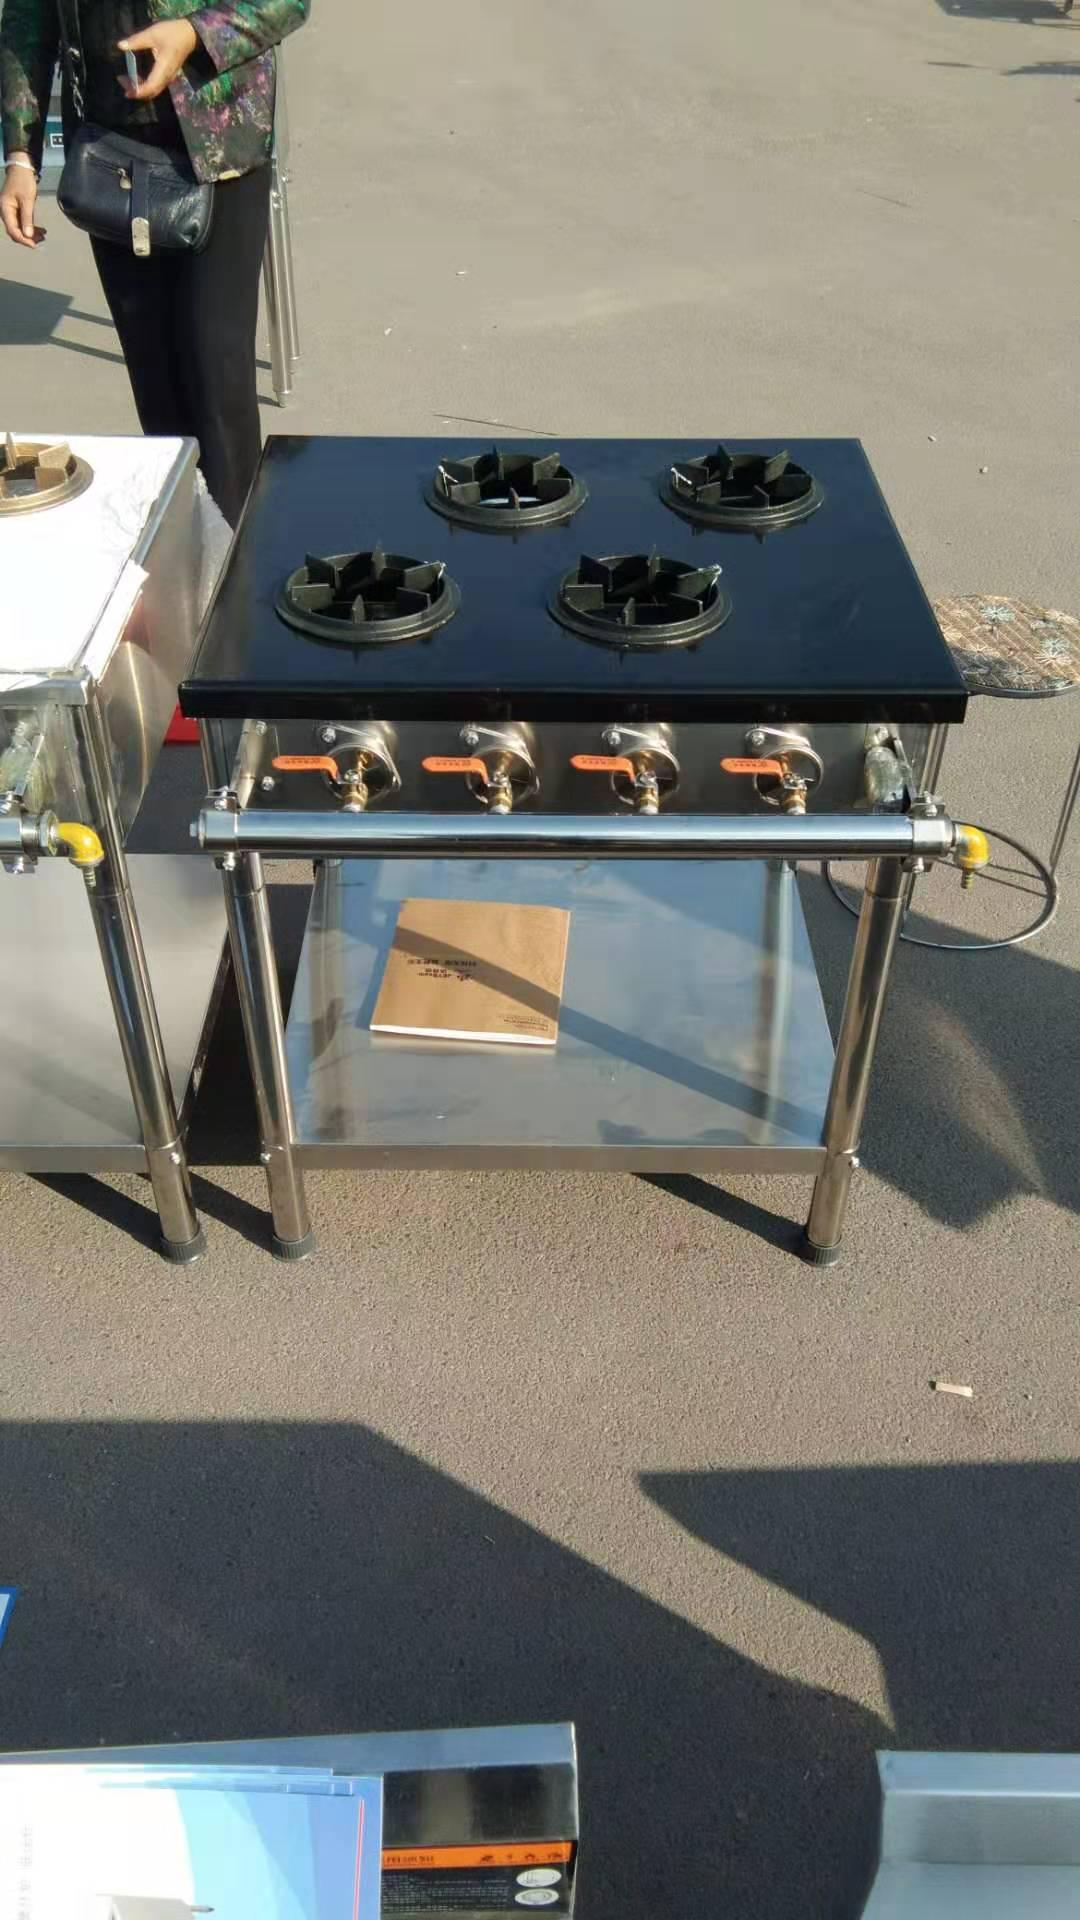 nature gas stainless steel kitchen oven  5